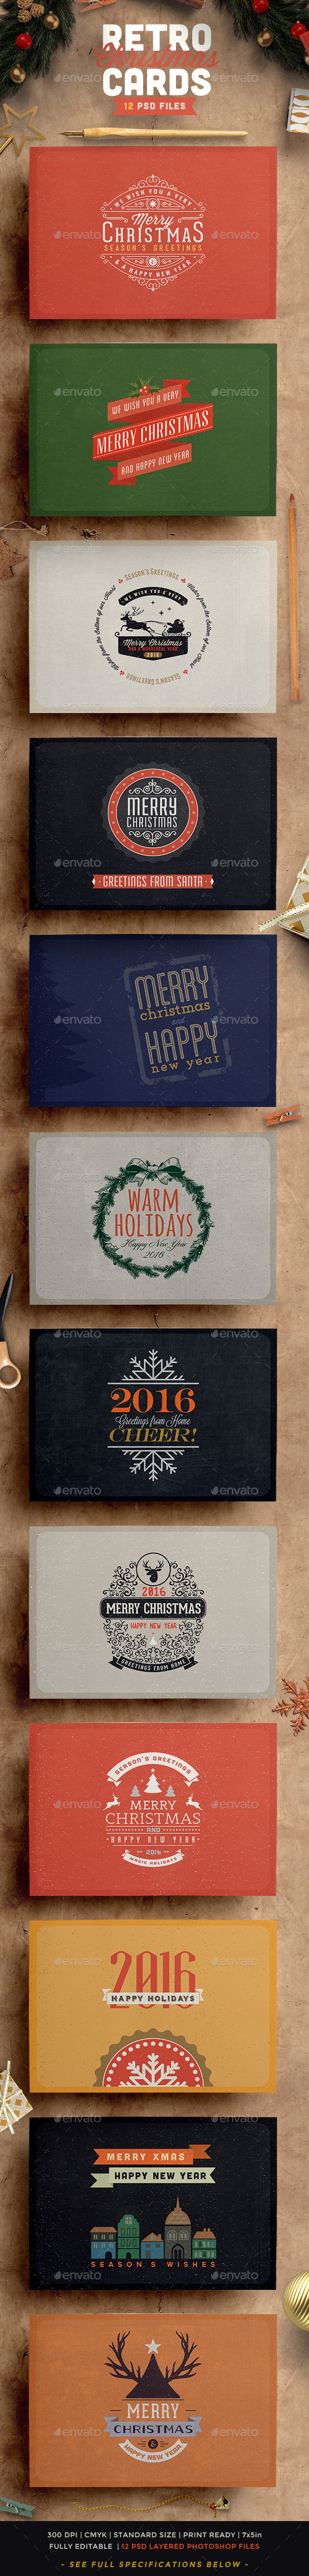 Retro / Vintage Christmas Card Pack - Holiday Greeting Cards